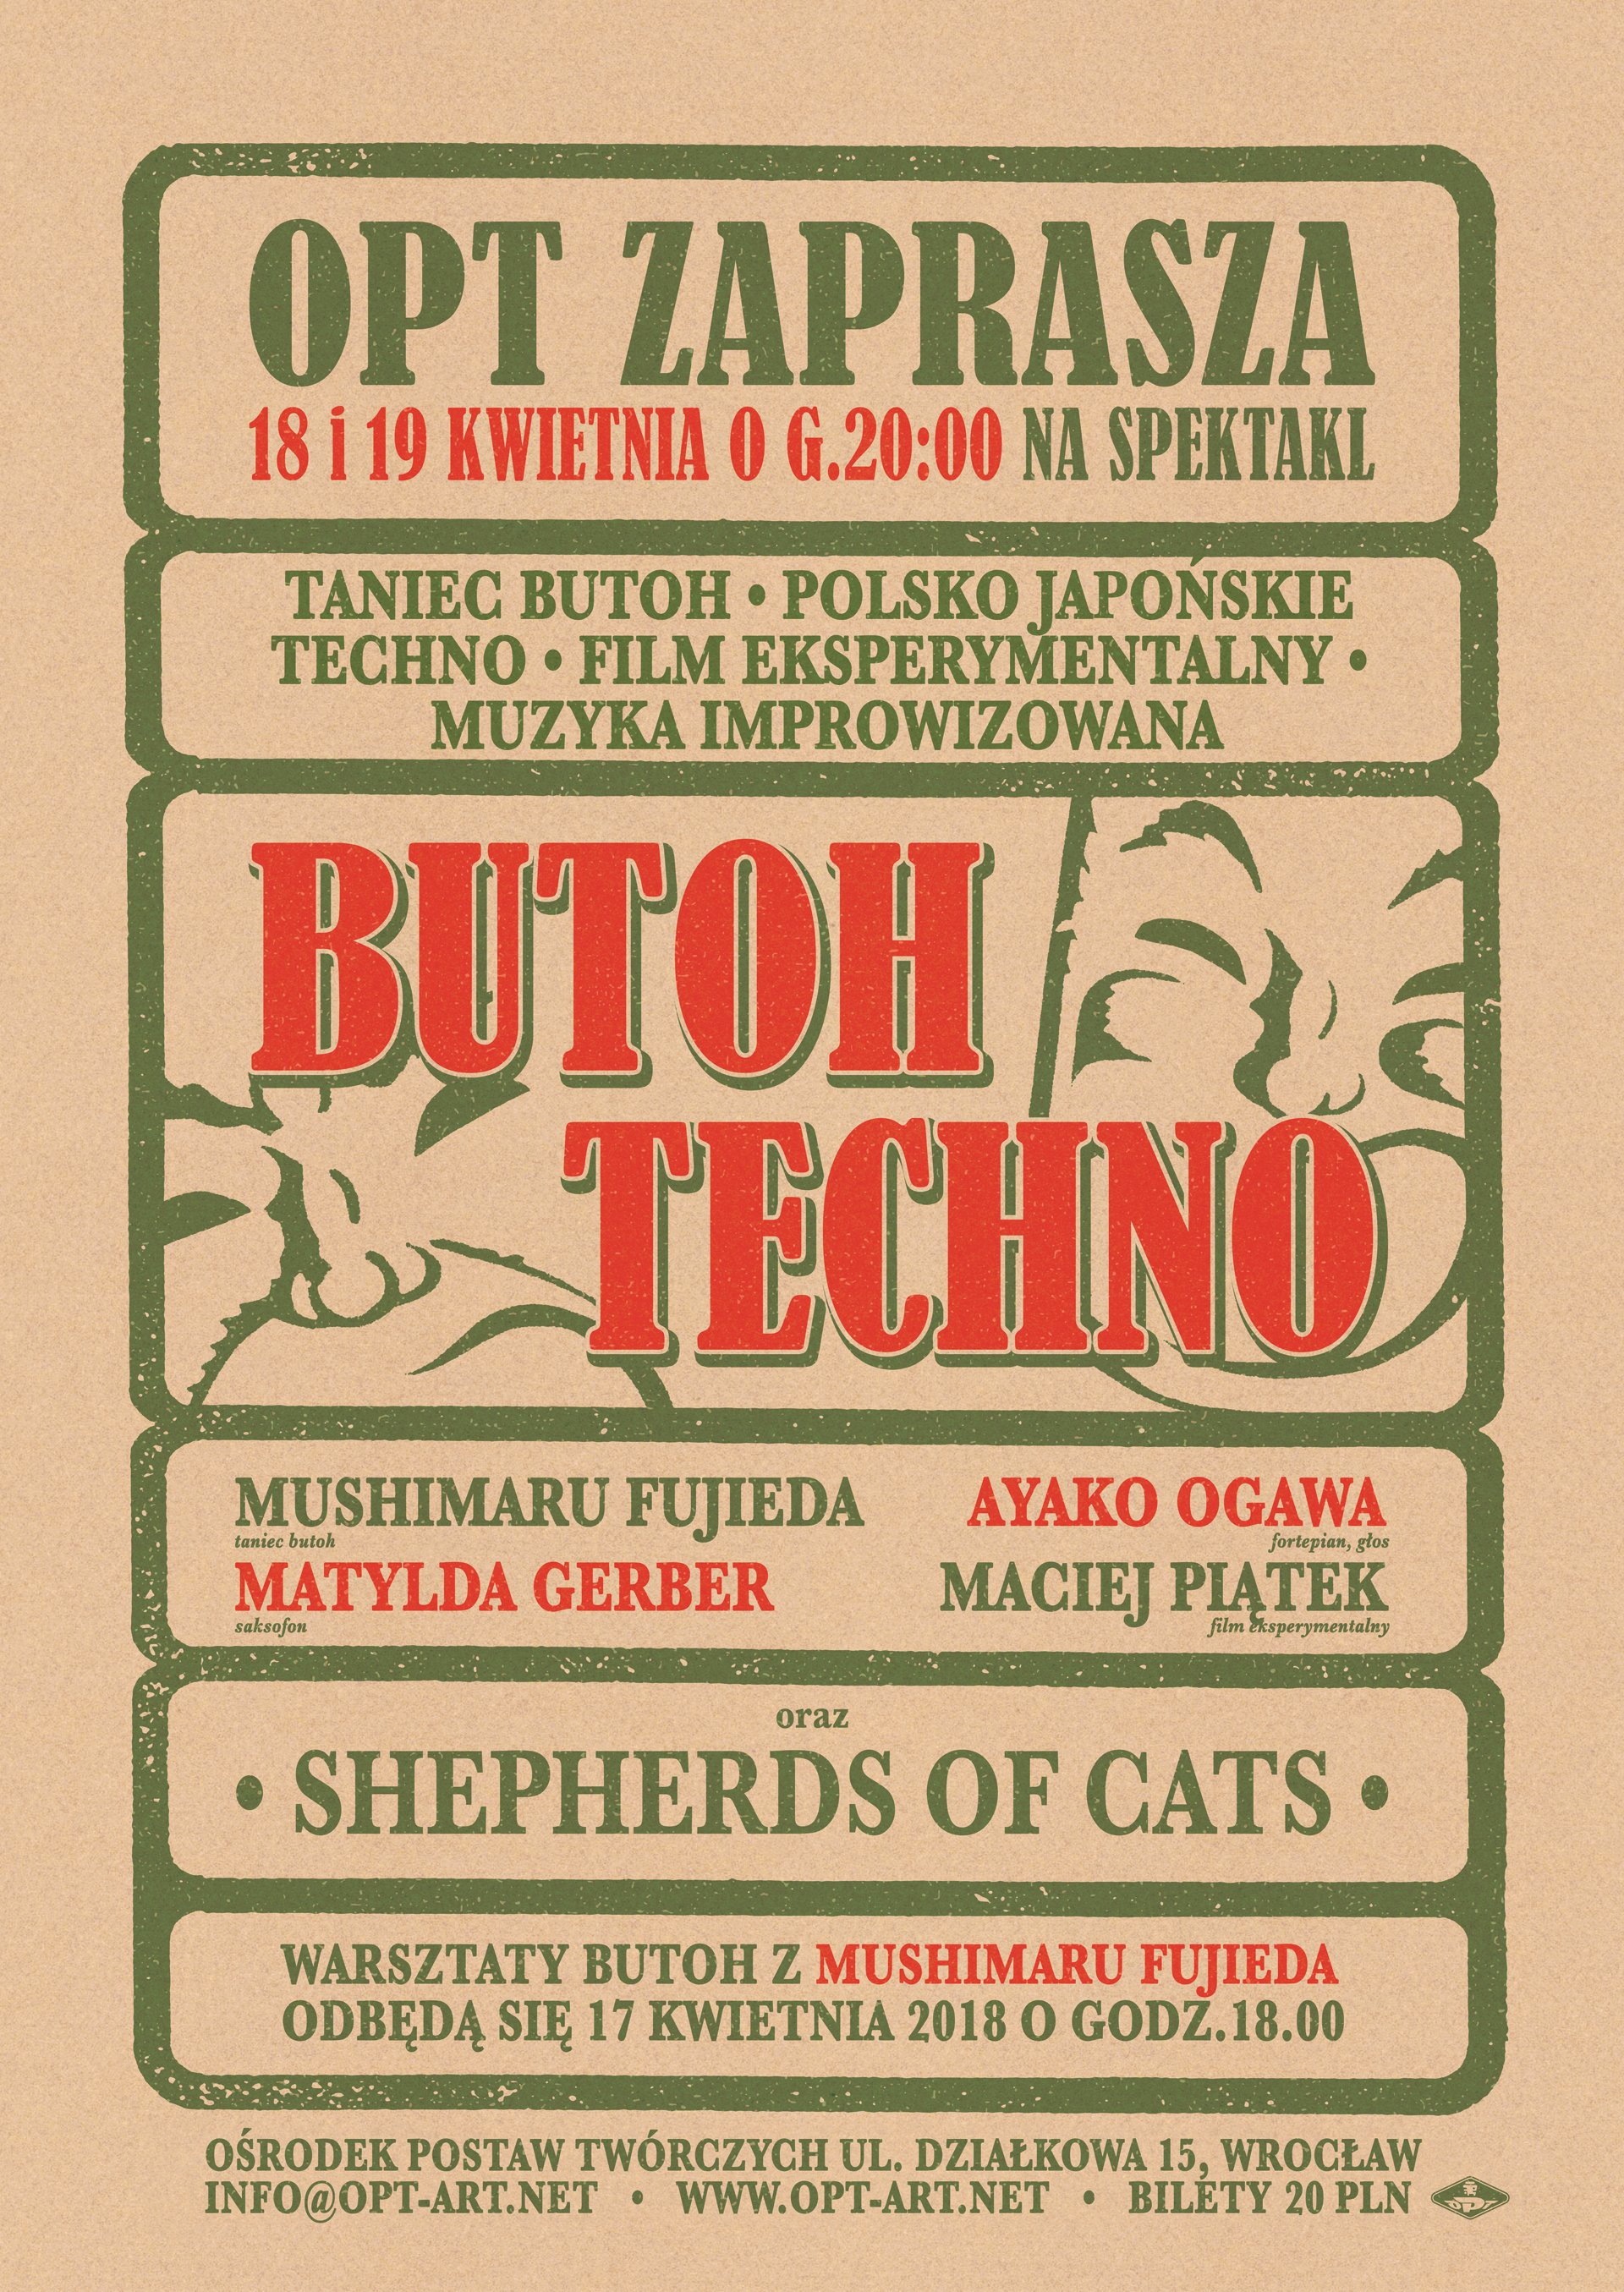 sklep-butoh-techno-18-04-bilet-butoh-poster-net-light